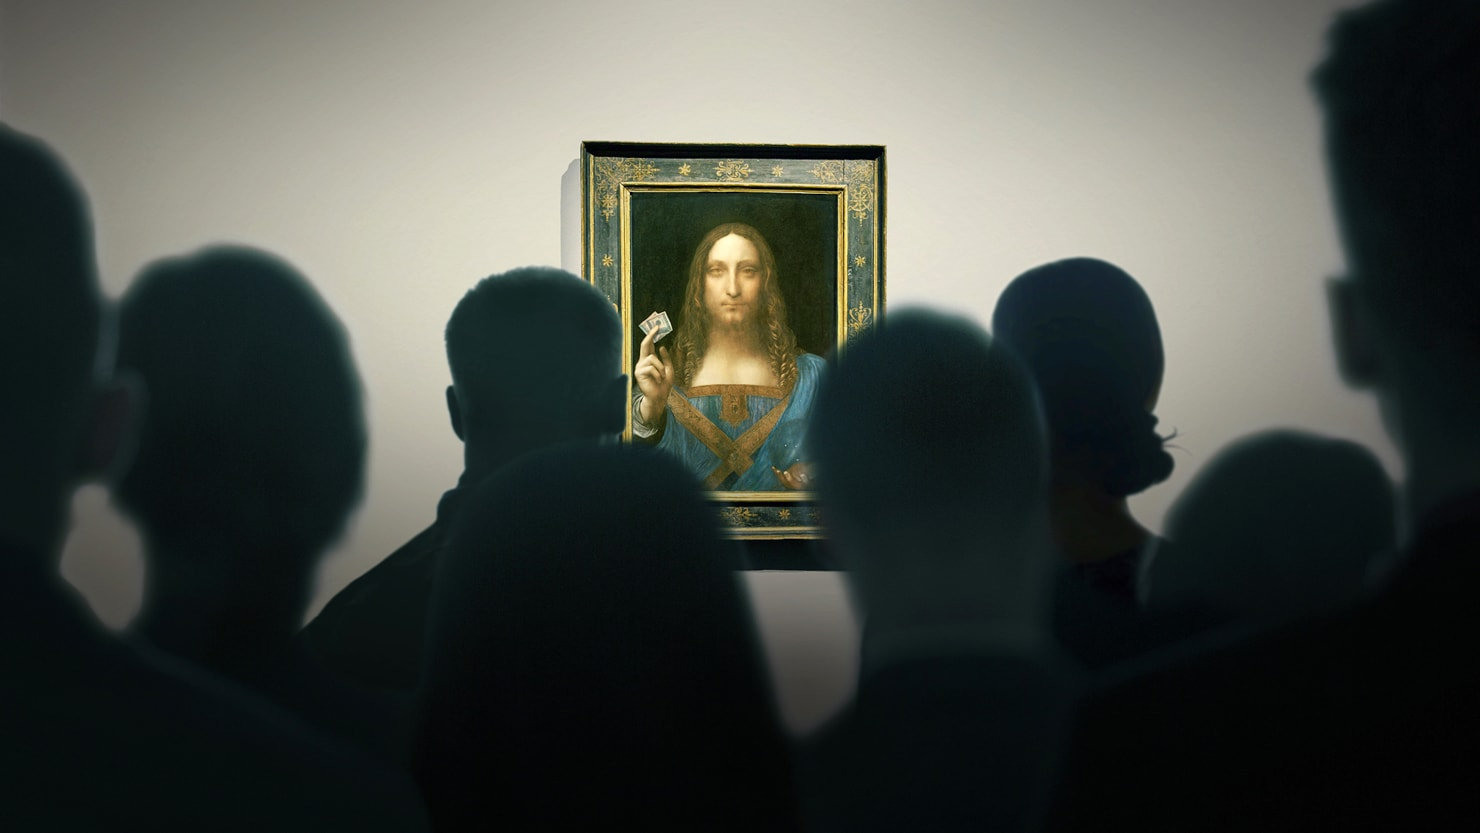 How Da Vinci's Salvator Mundi, the World's Priciest Painting, Ended Up in the Hands of a Notorious Killer